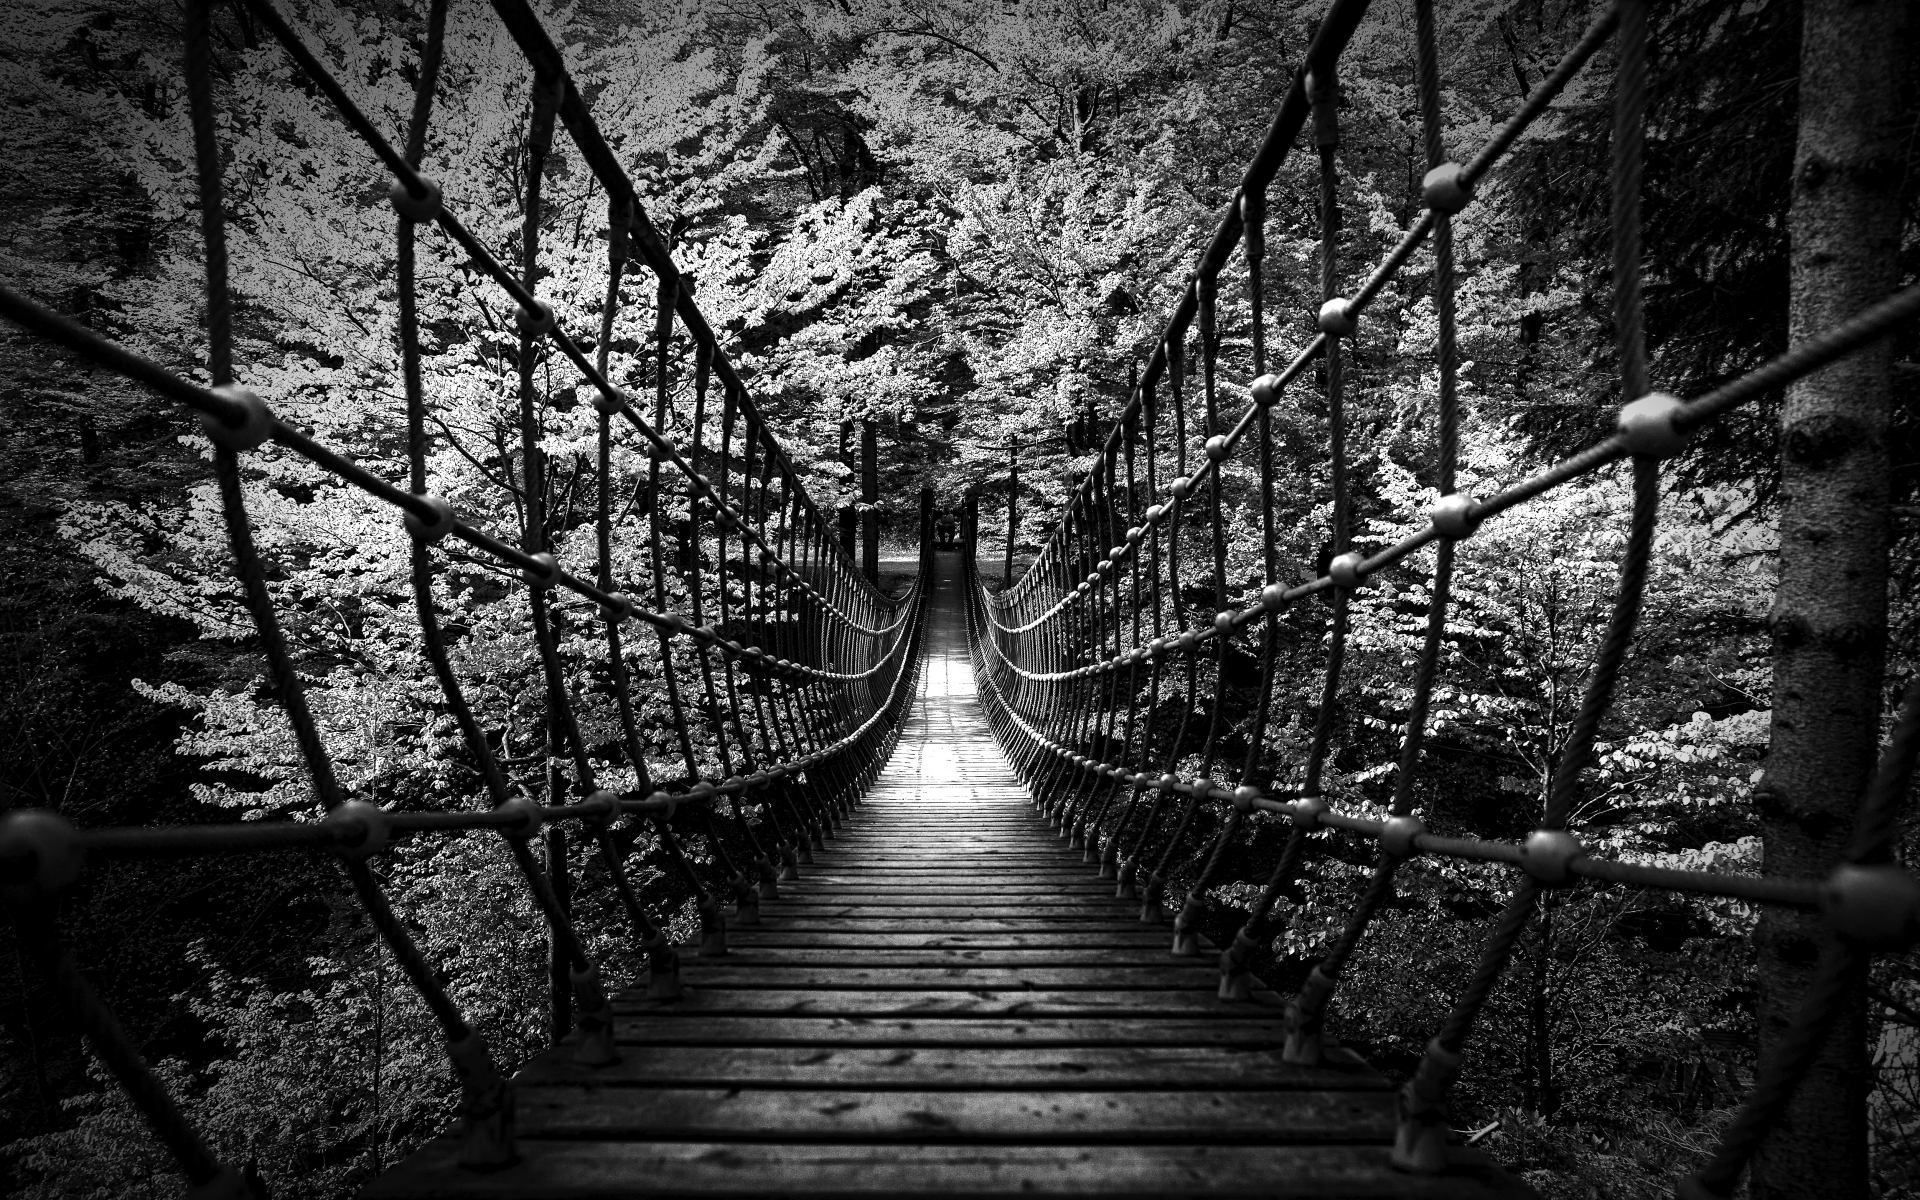 black white bw landscapes nature wood rope scary bridges trees forest 1920x1200